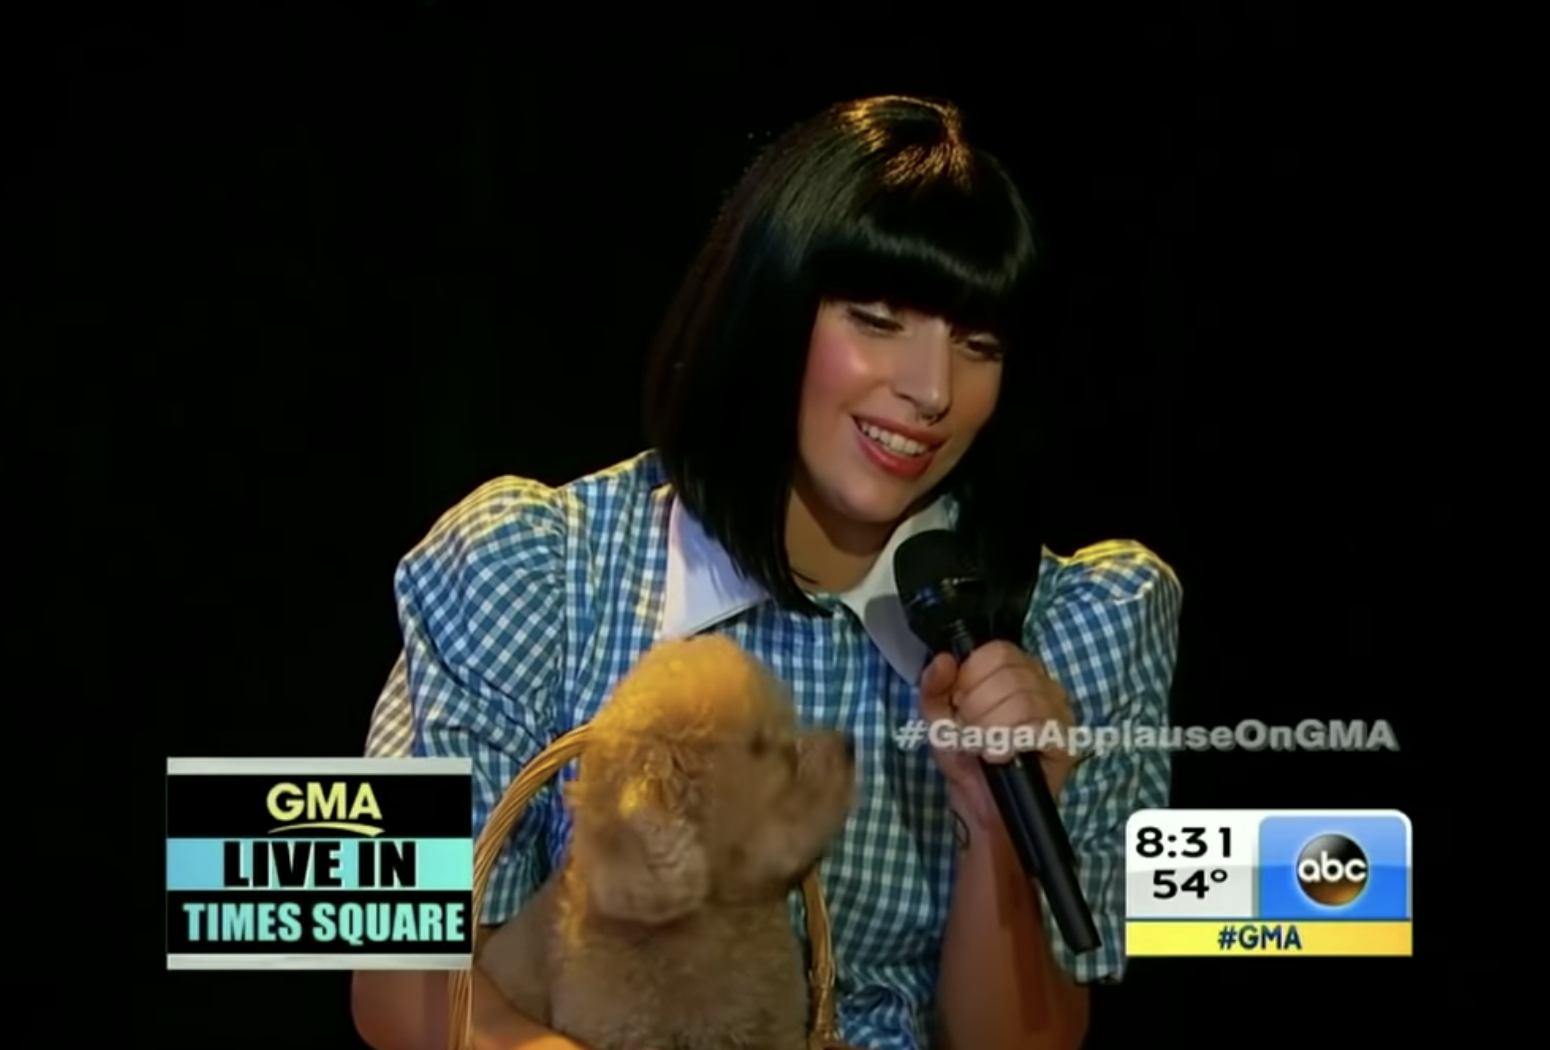 Gaga singing in a short black bob while carrying a real dog in a basket